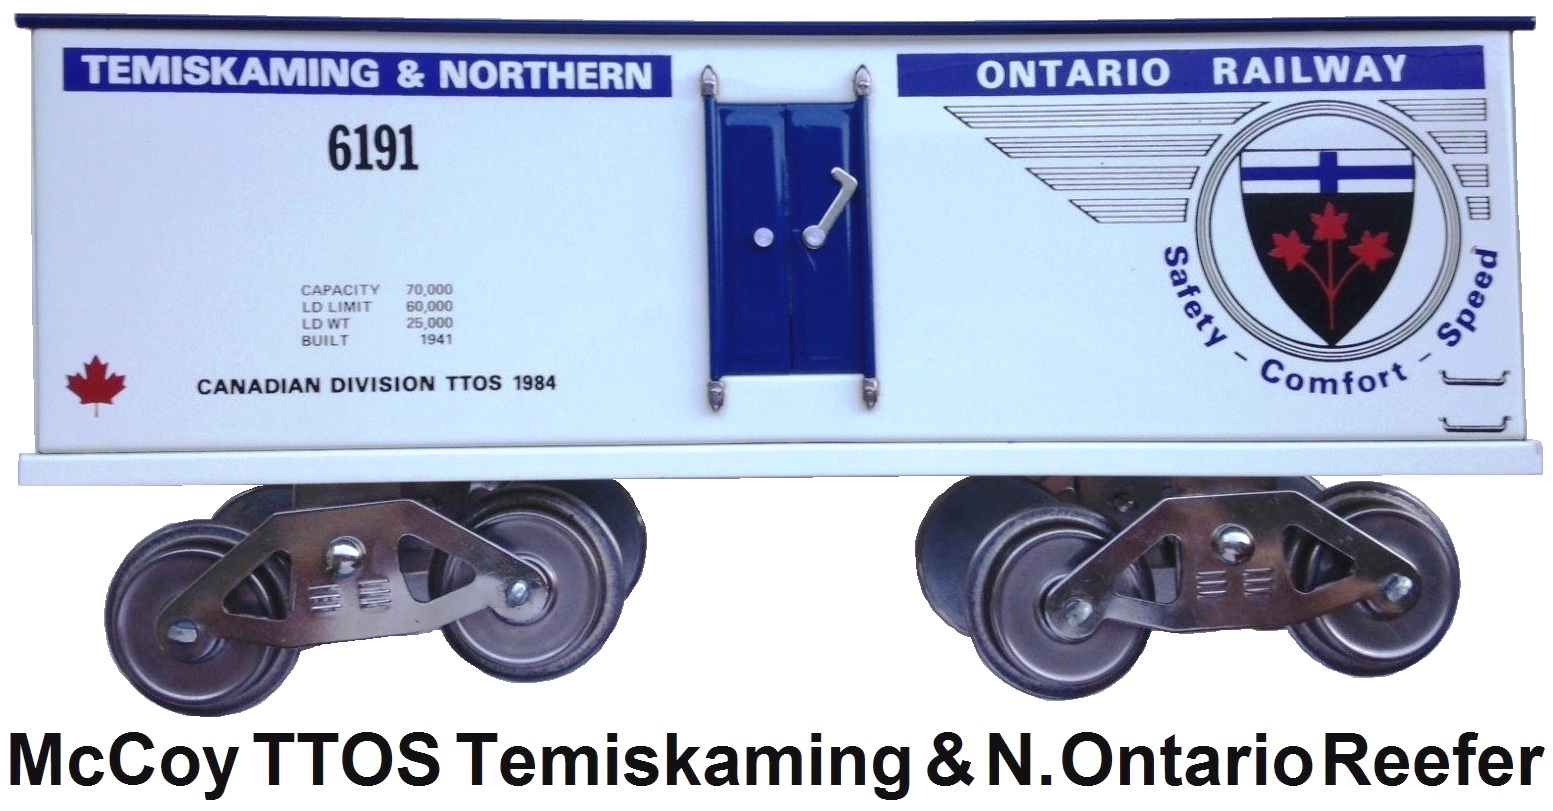 McCoy TTOS Canadian Division Temiskaming & Northern Ontario Railway refrigerator car in white, 115 produced